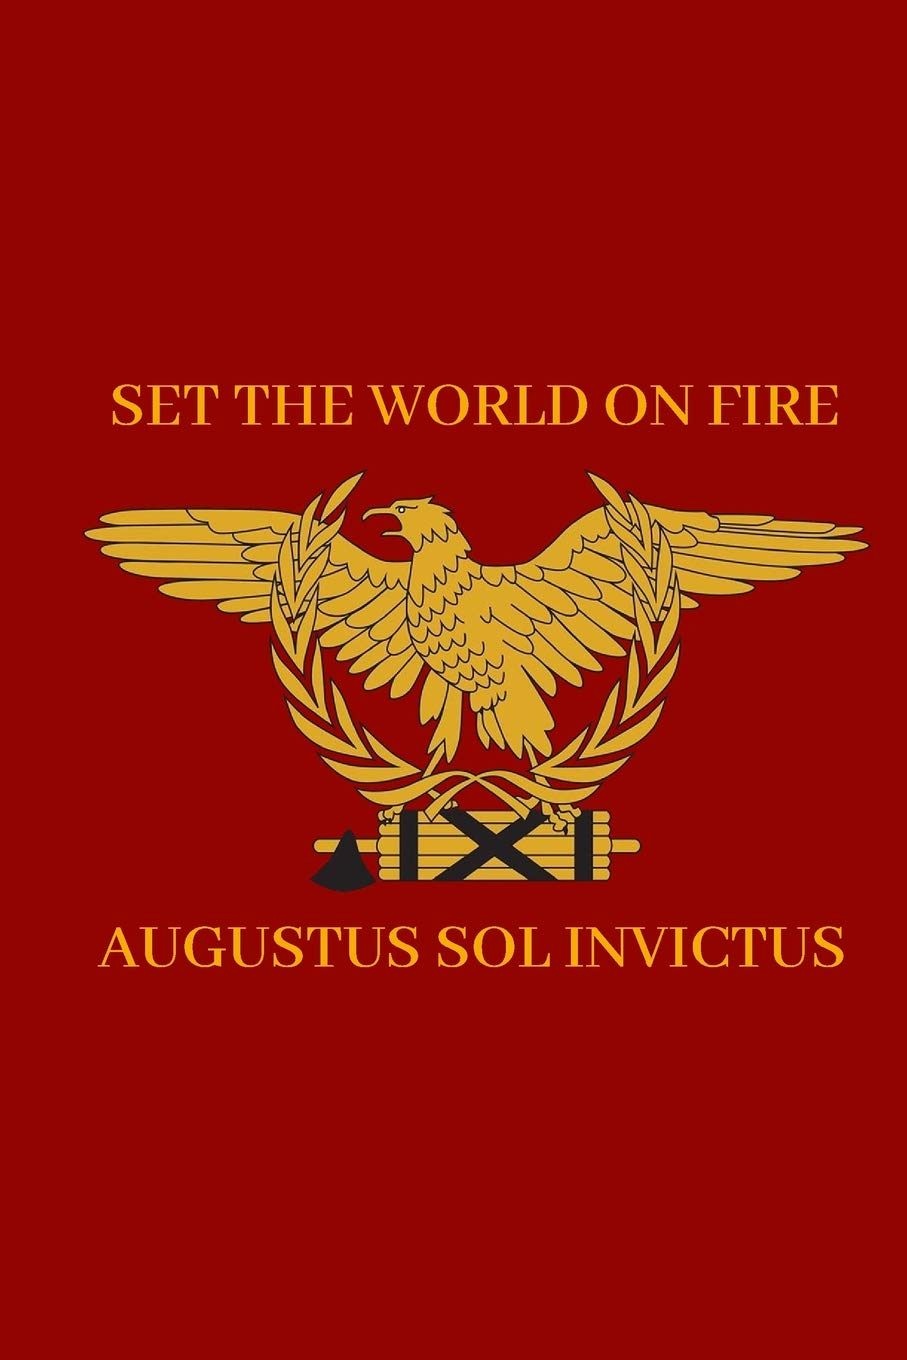 Set the World on Fire by Augustus Sol Invictus